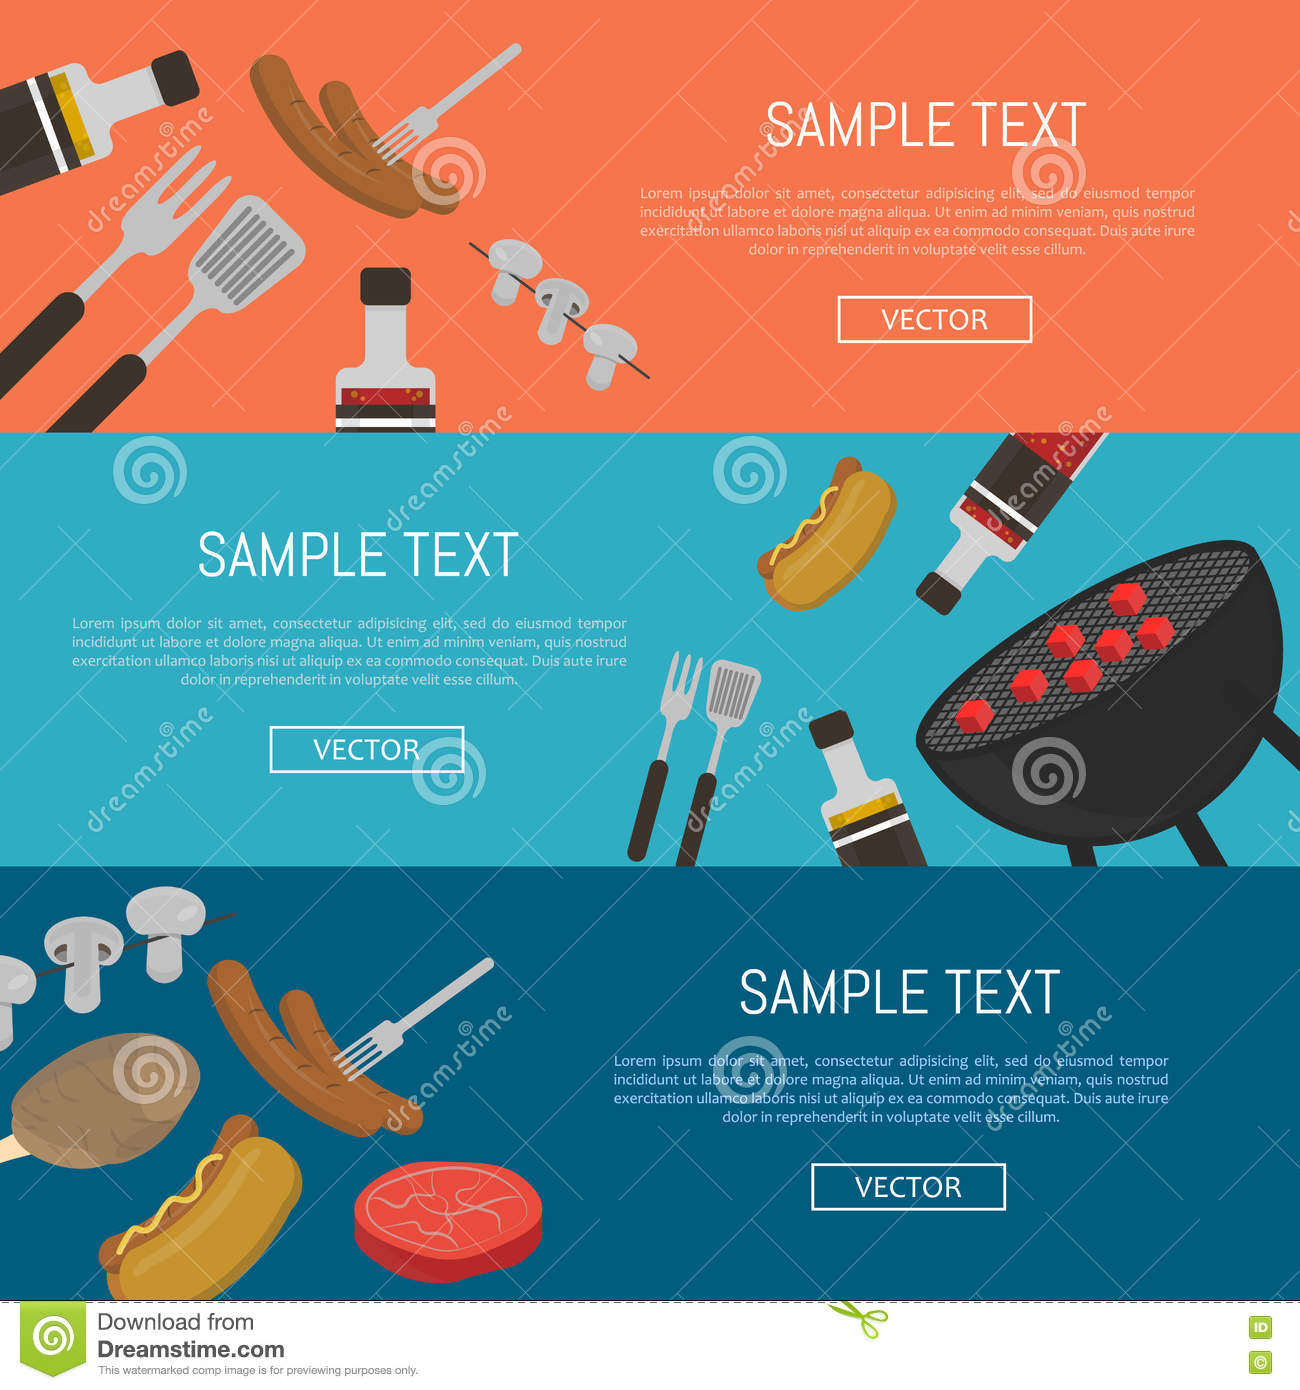 Delivery service horizontal website templates vector image.